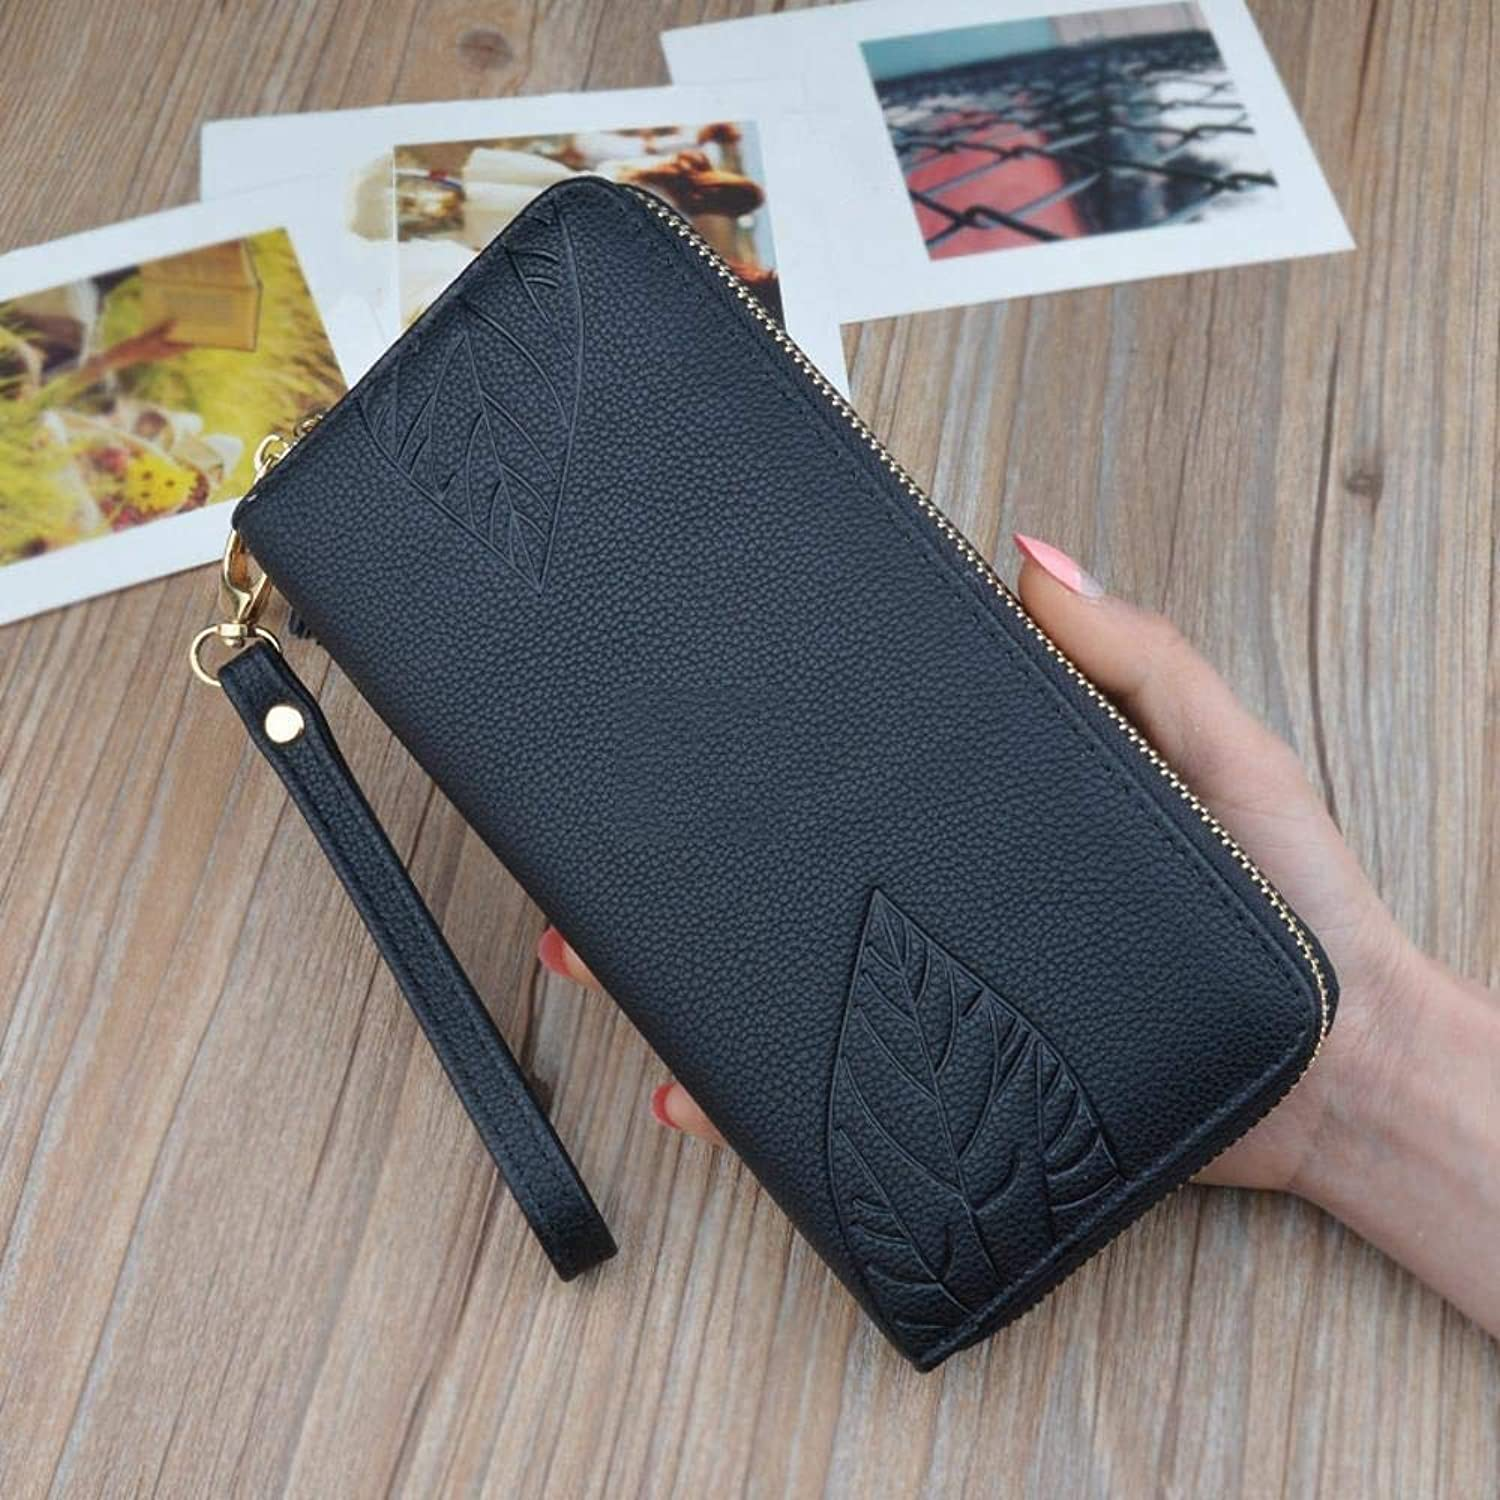 Girls Purse Women's Wallet Large Capacity MultiCard Holder Hand Purse PU Leather (color   B)